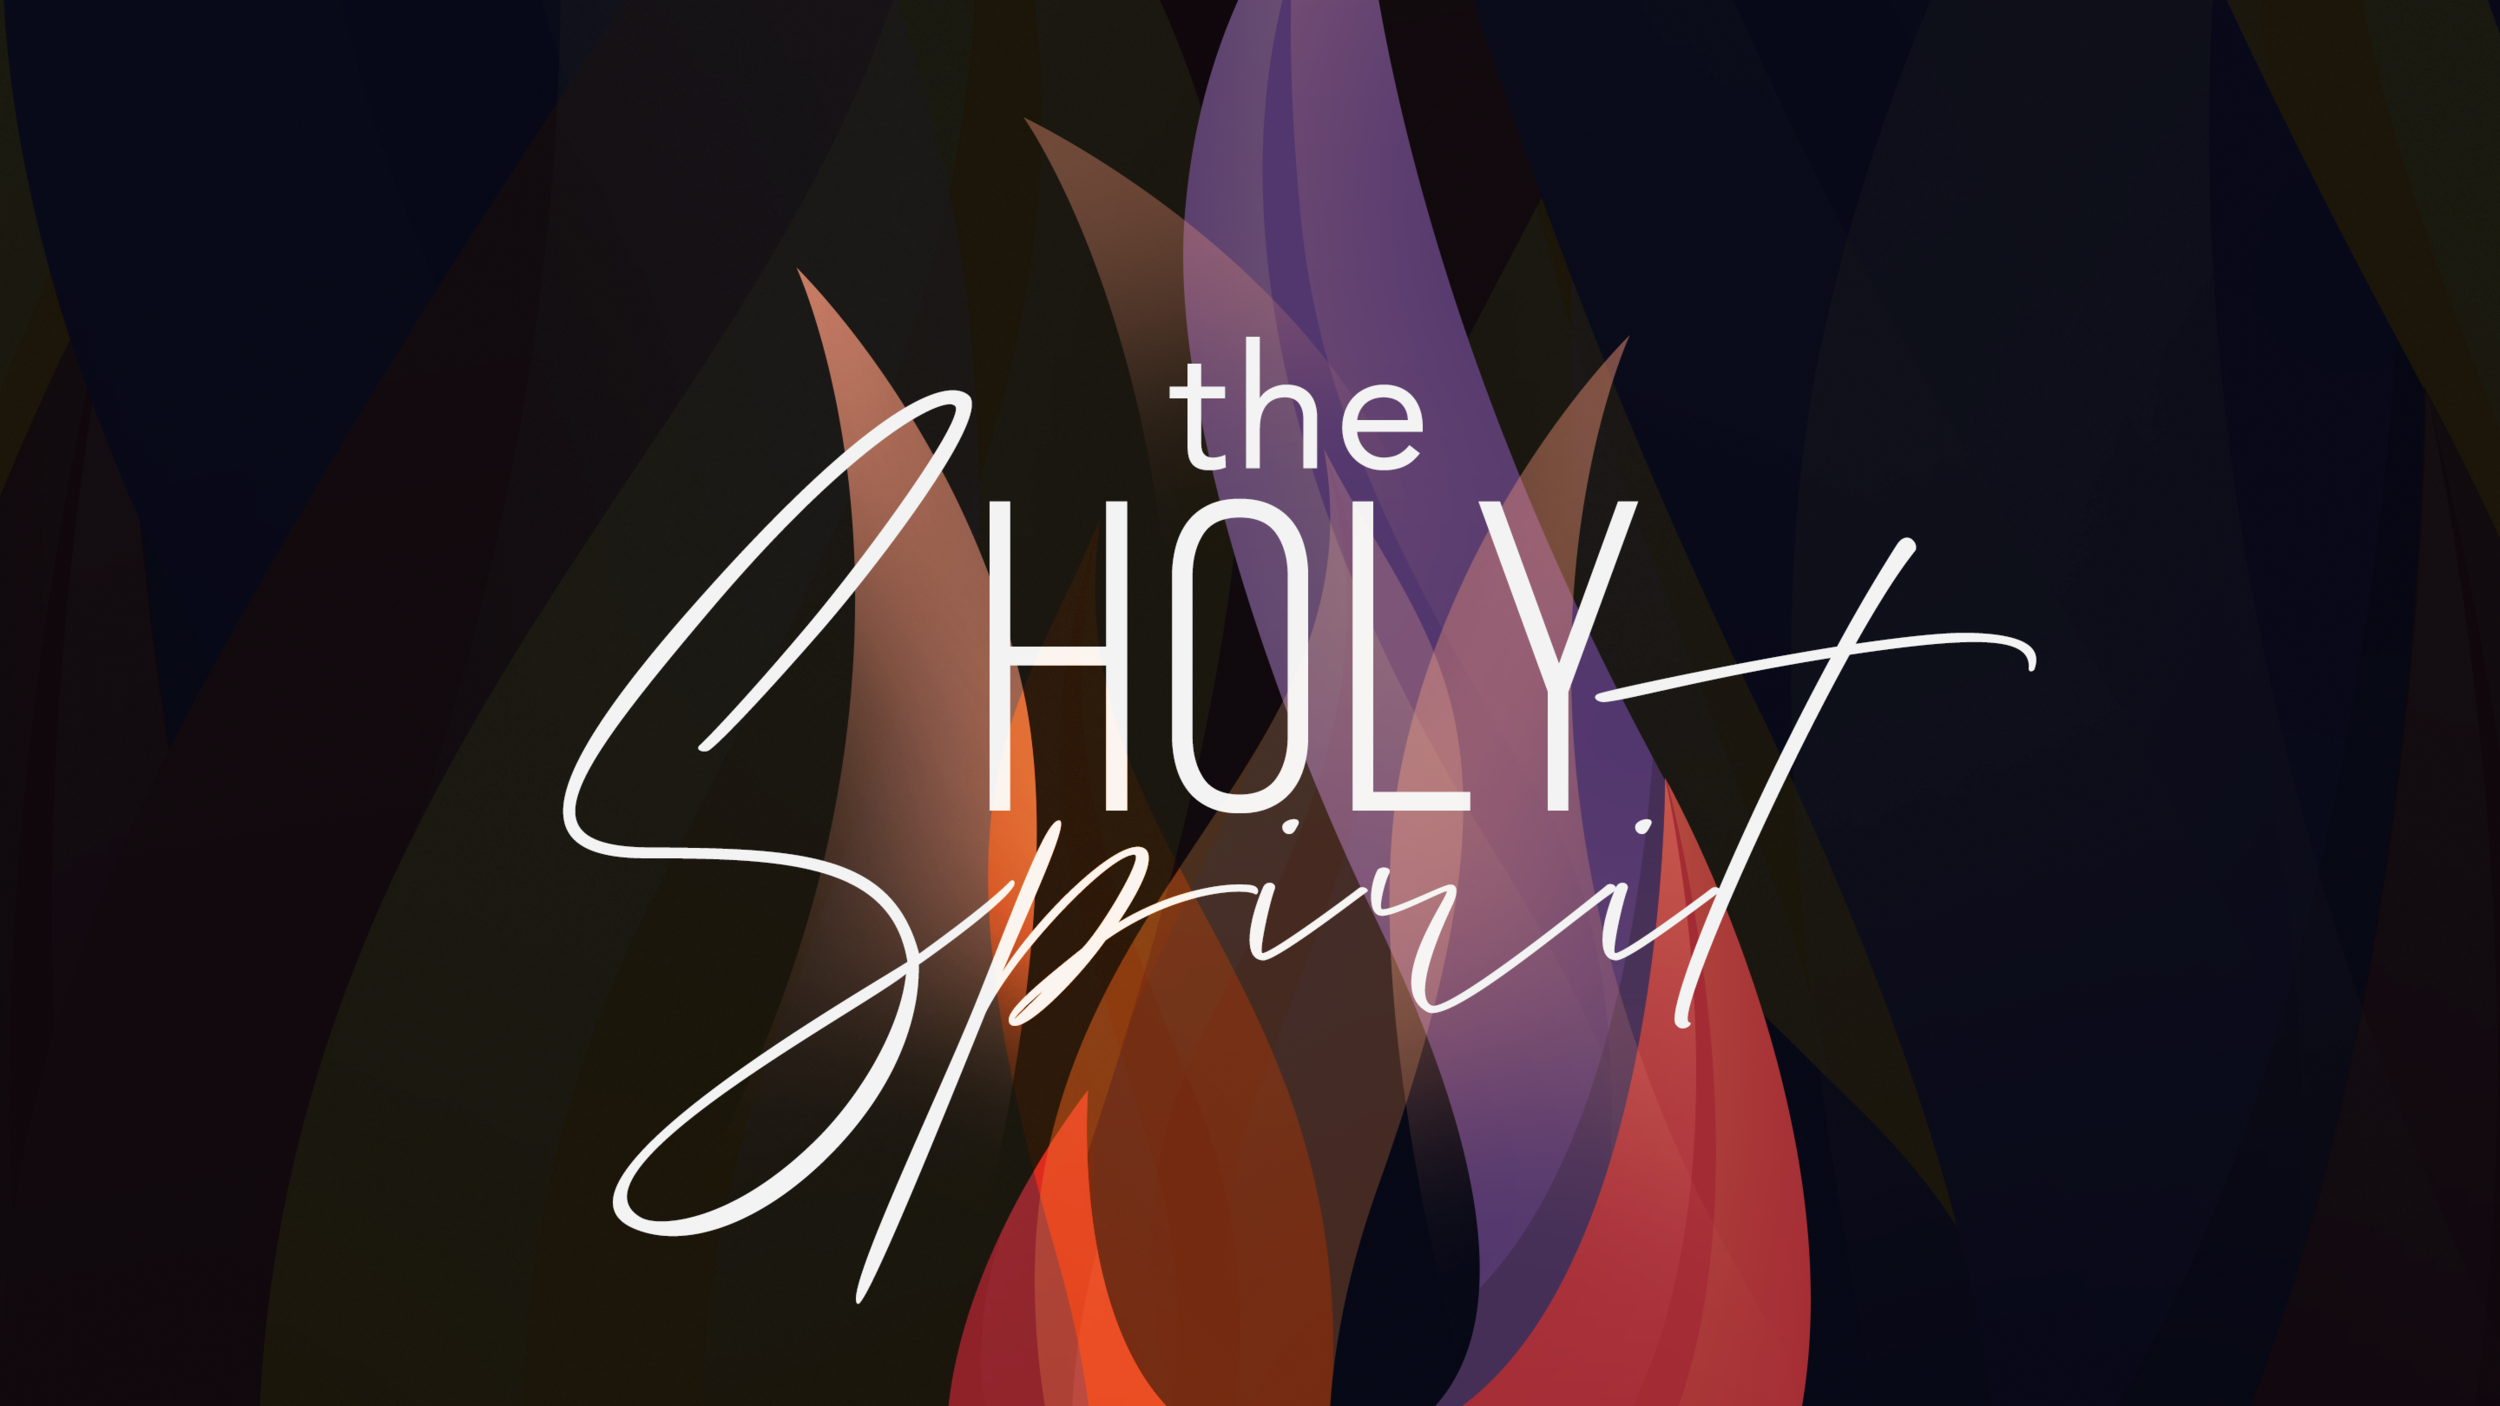 The Holy Spirit - Title.png